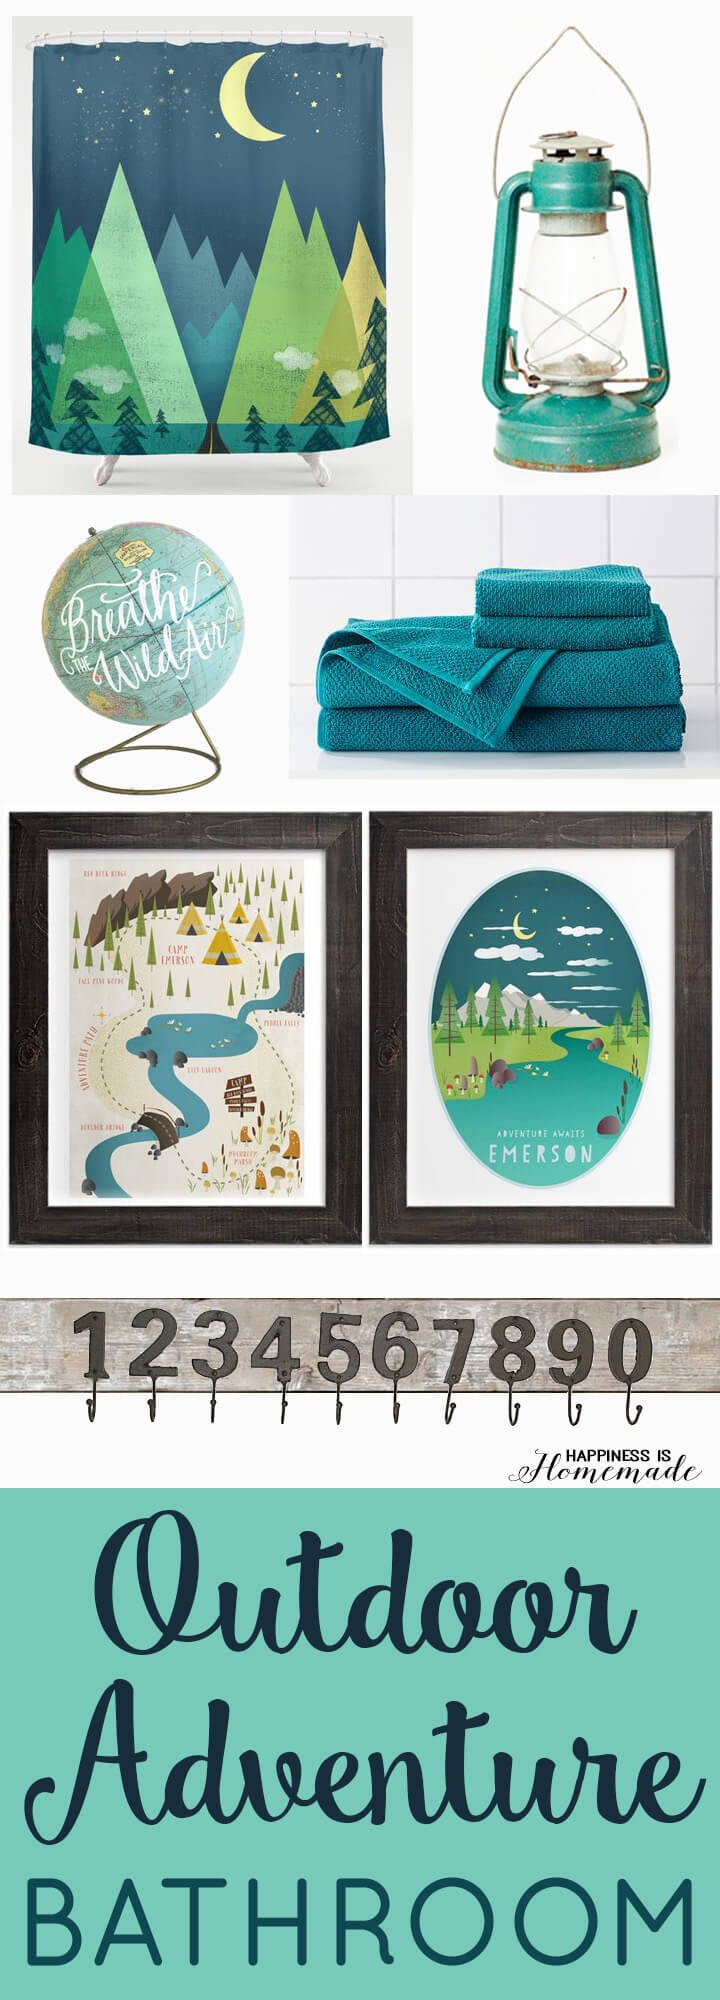 Outdoor Adventure Themed Boys Bathroom Design Idea and Vision Board